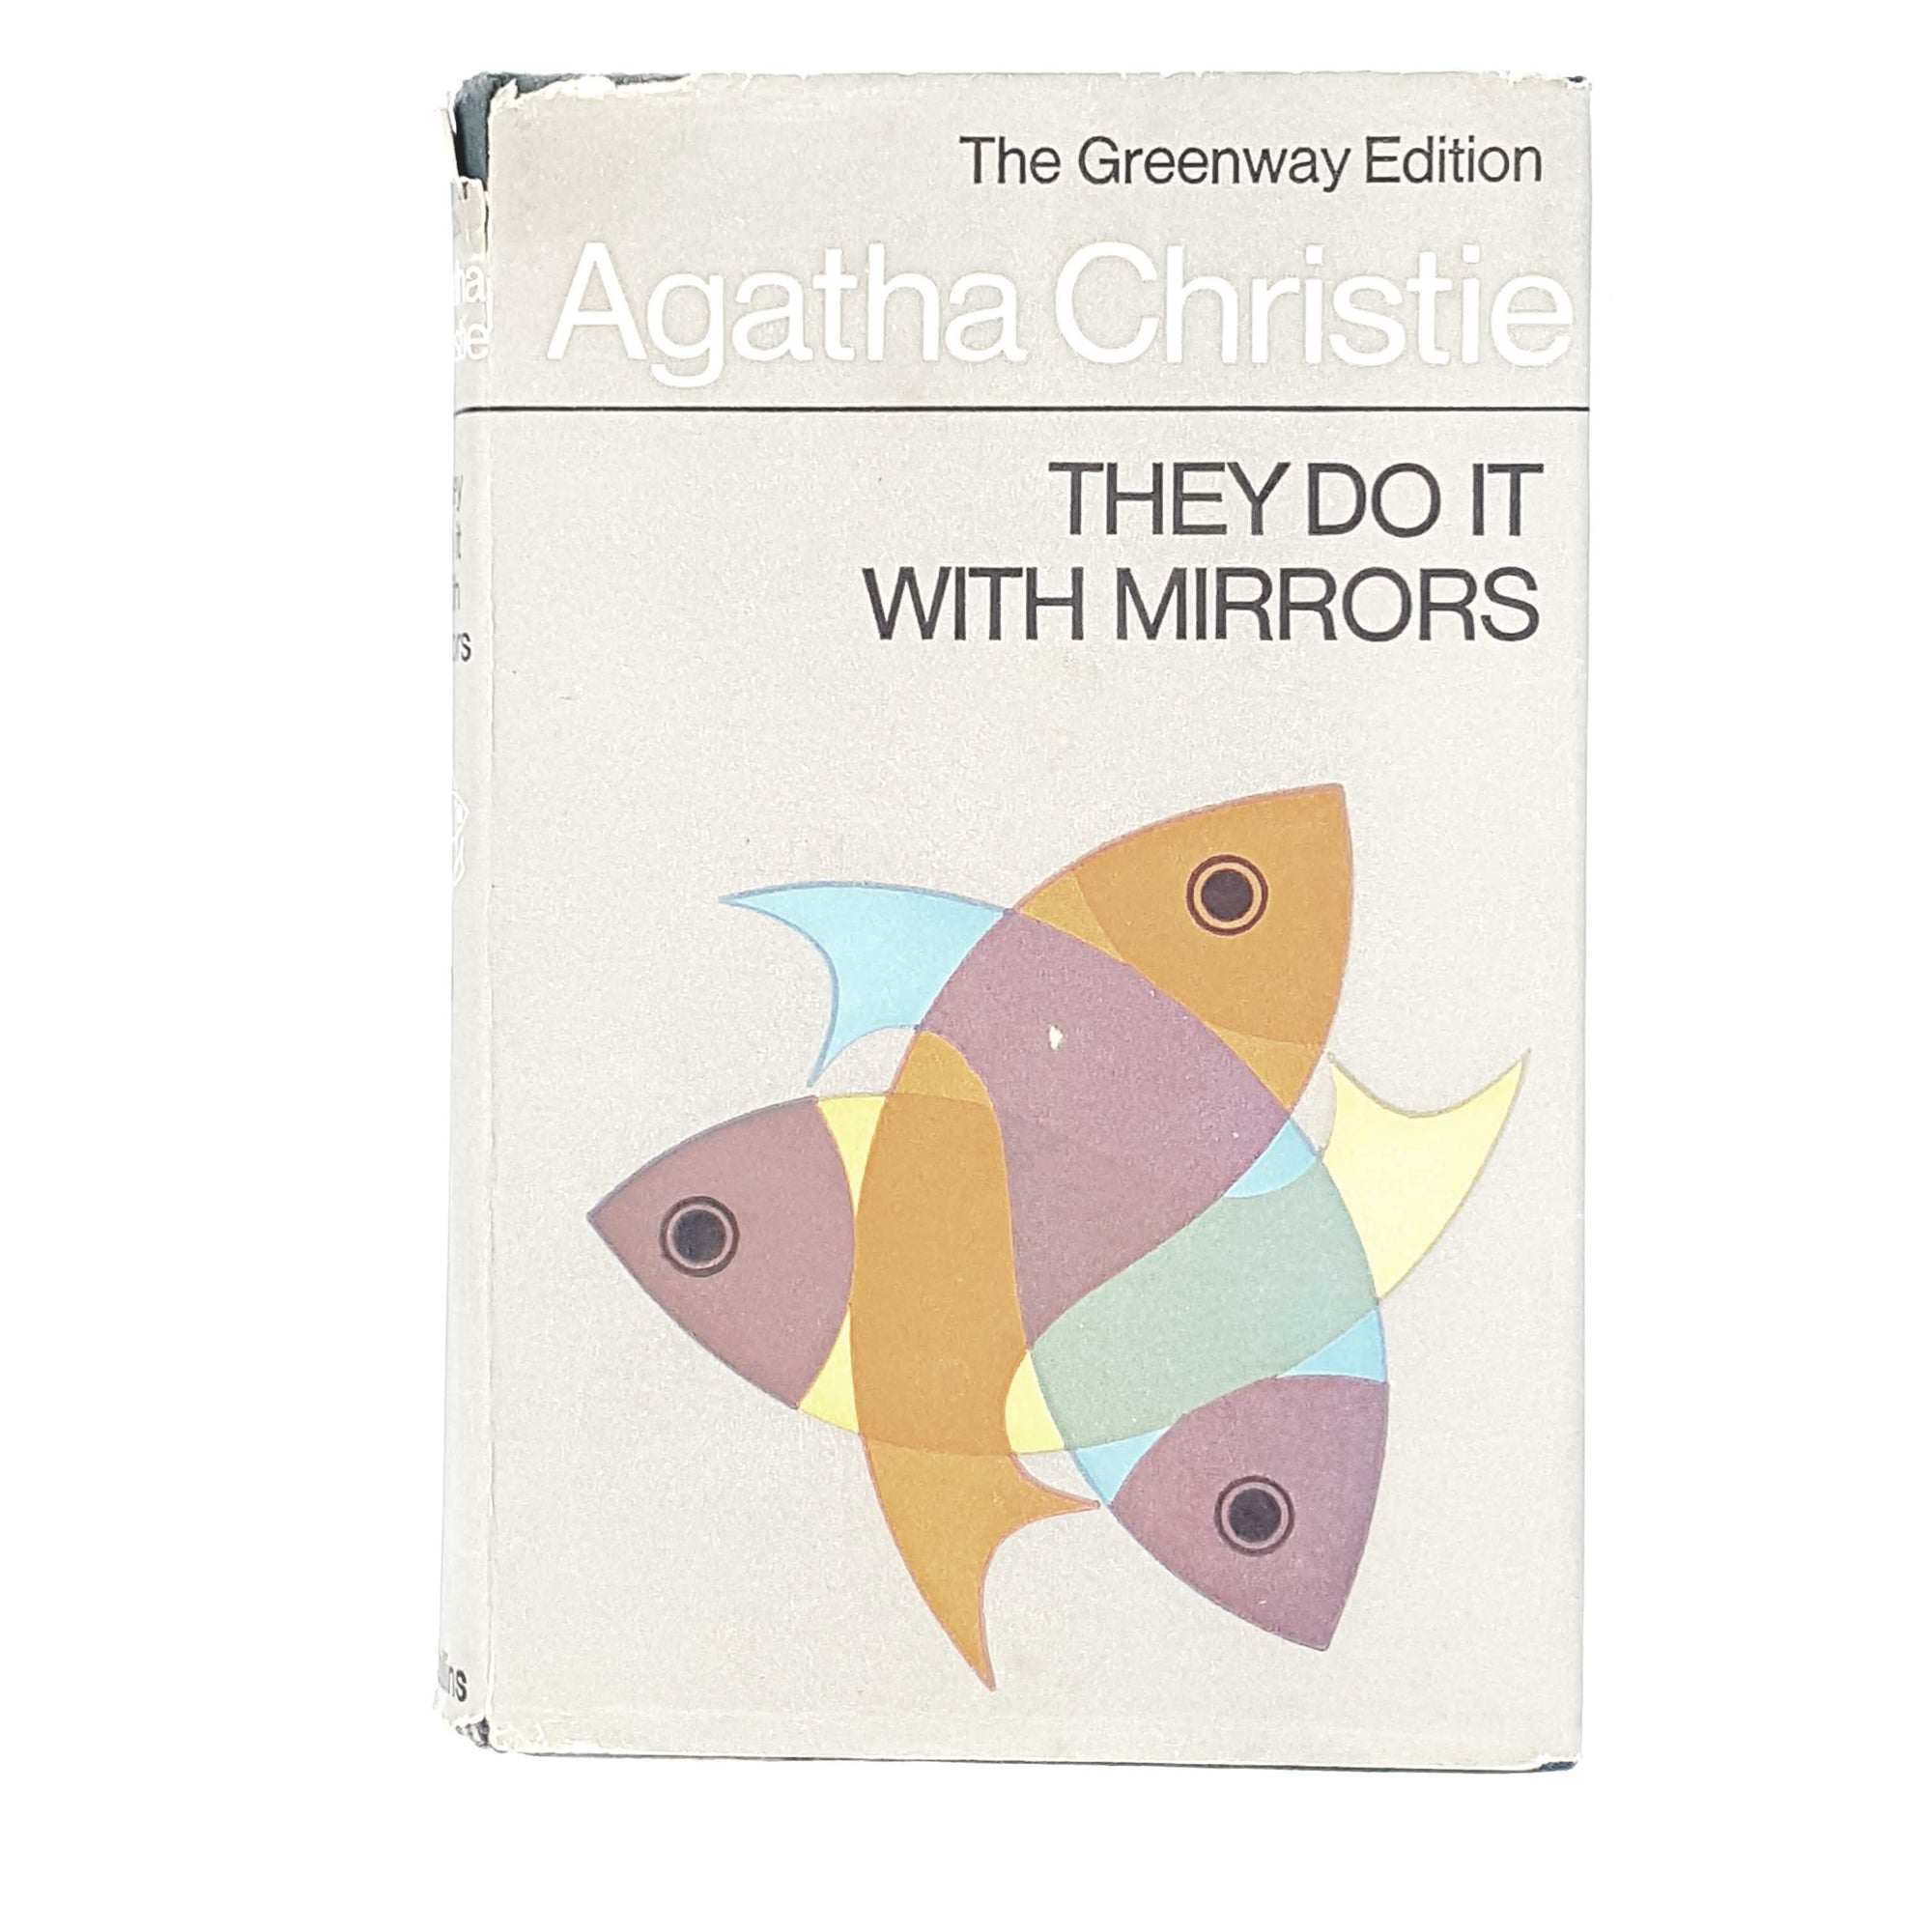 Agatha Christie's They Do it With Mirrors 1969